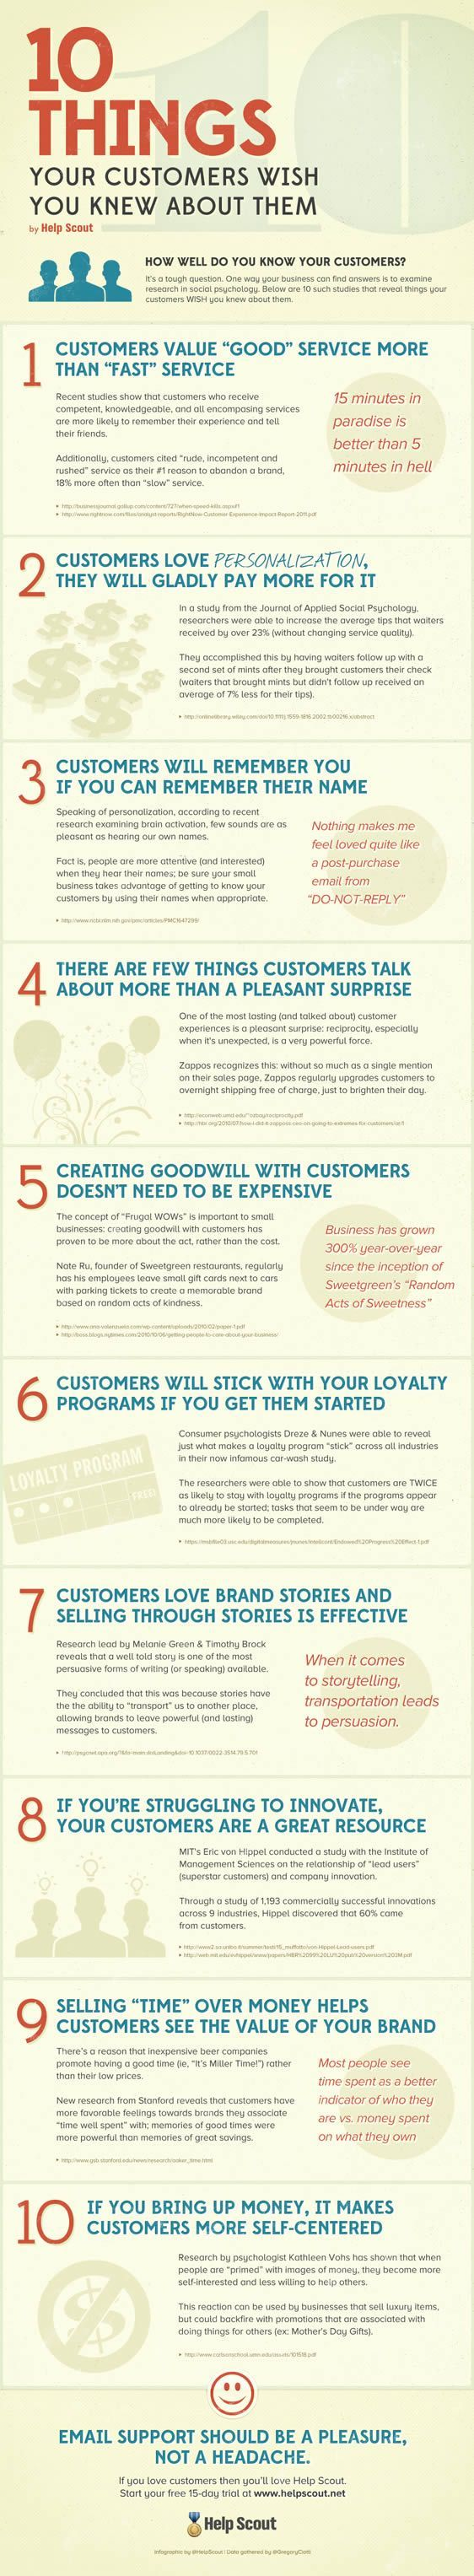 Today's consumers expect better customer service and more personalized experiences than ever before. They are quick to punish businesses that do not meet their expectations — and reward those that do. But most marketers have some way to go in perfecting their customer experience. A hat tip for the folks at Help Scout for putting together an infographic with tips on how you can build a company your customers love. #customerexperience #customerservice